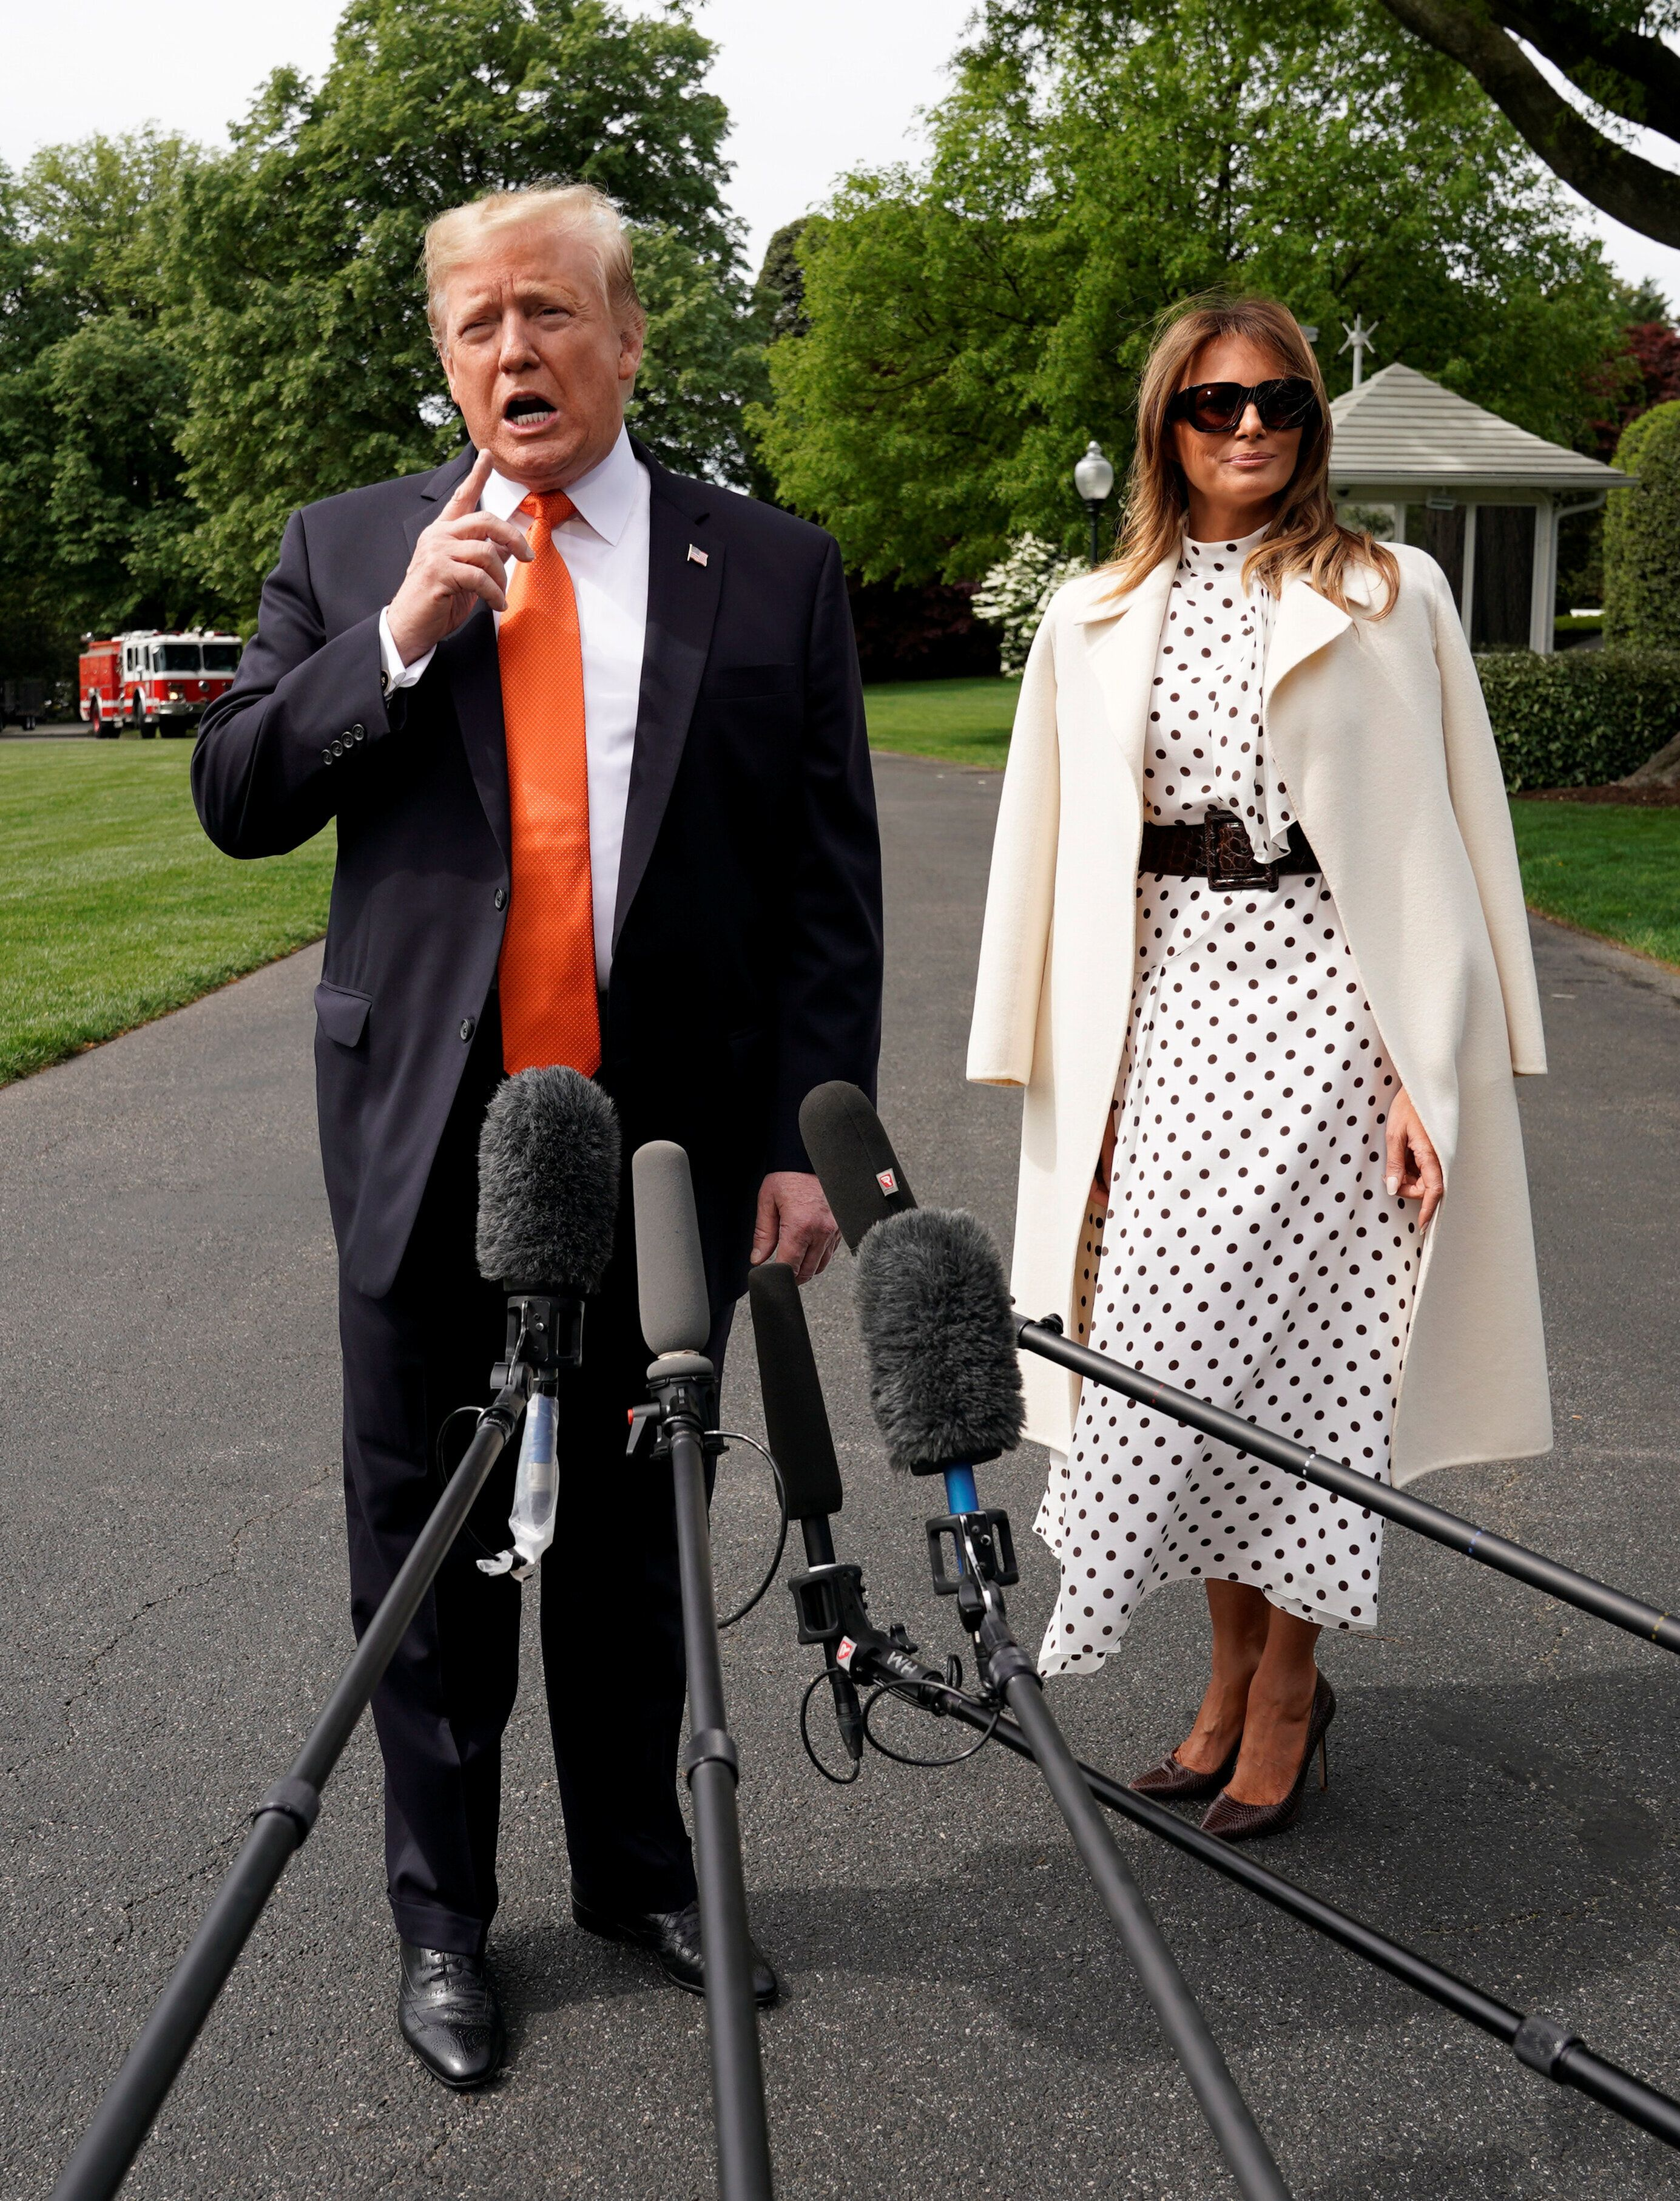 U.S. President Donald Trump speaks to reporters as he and first lady Melania Trump depart the White House in Washington, U.S., April 24, 2019. REUTERS/Kevin Lamarque